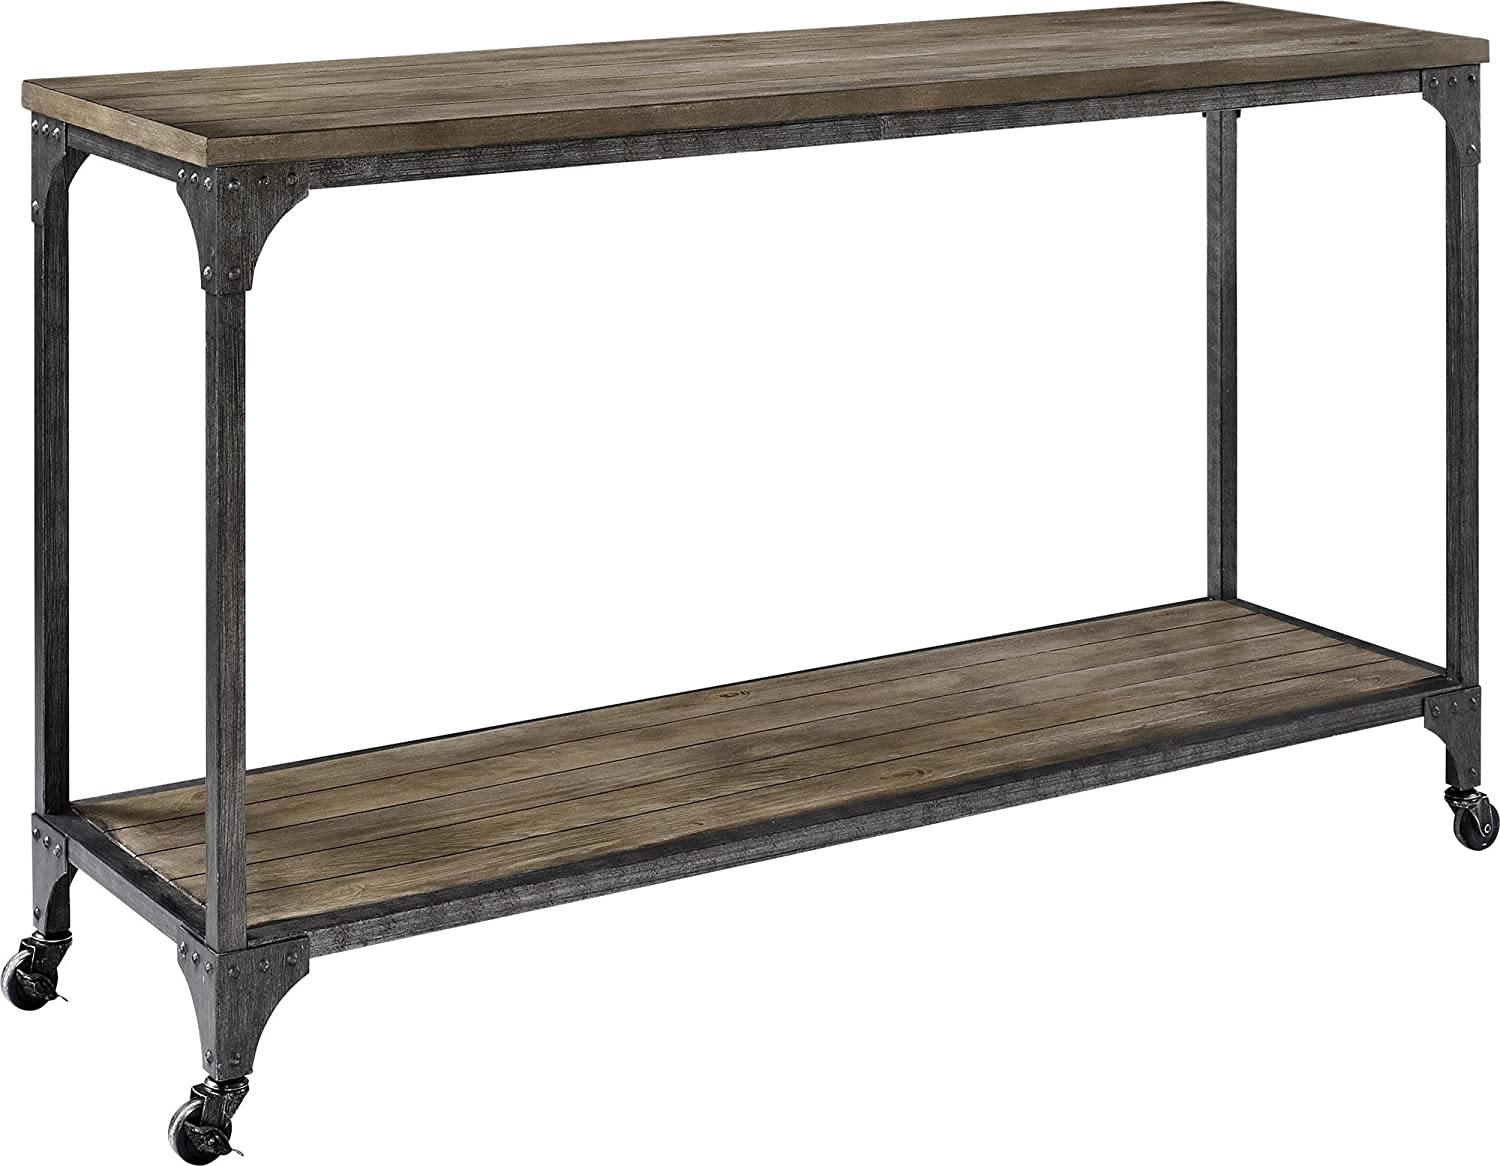 Amazon.com: Altra Cecil Wood Veneer Console Table, Rustic: Kitchen U0026 Dining